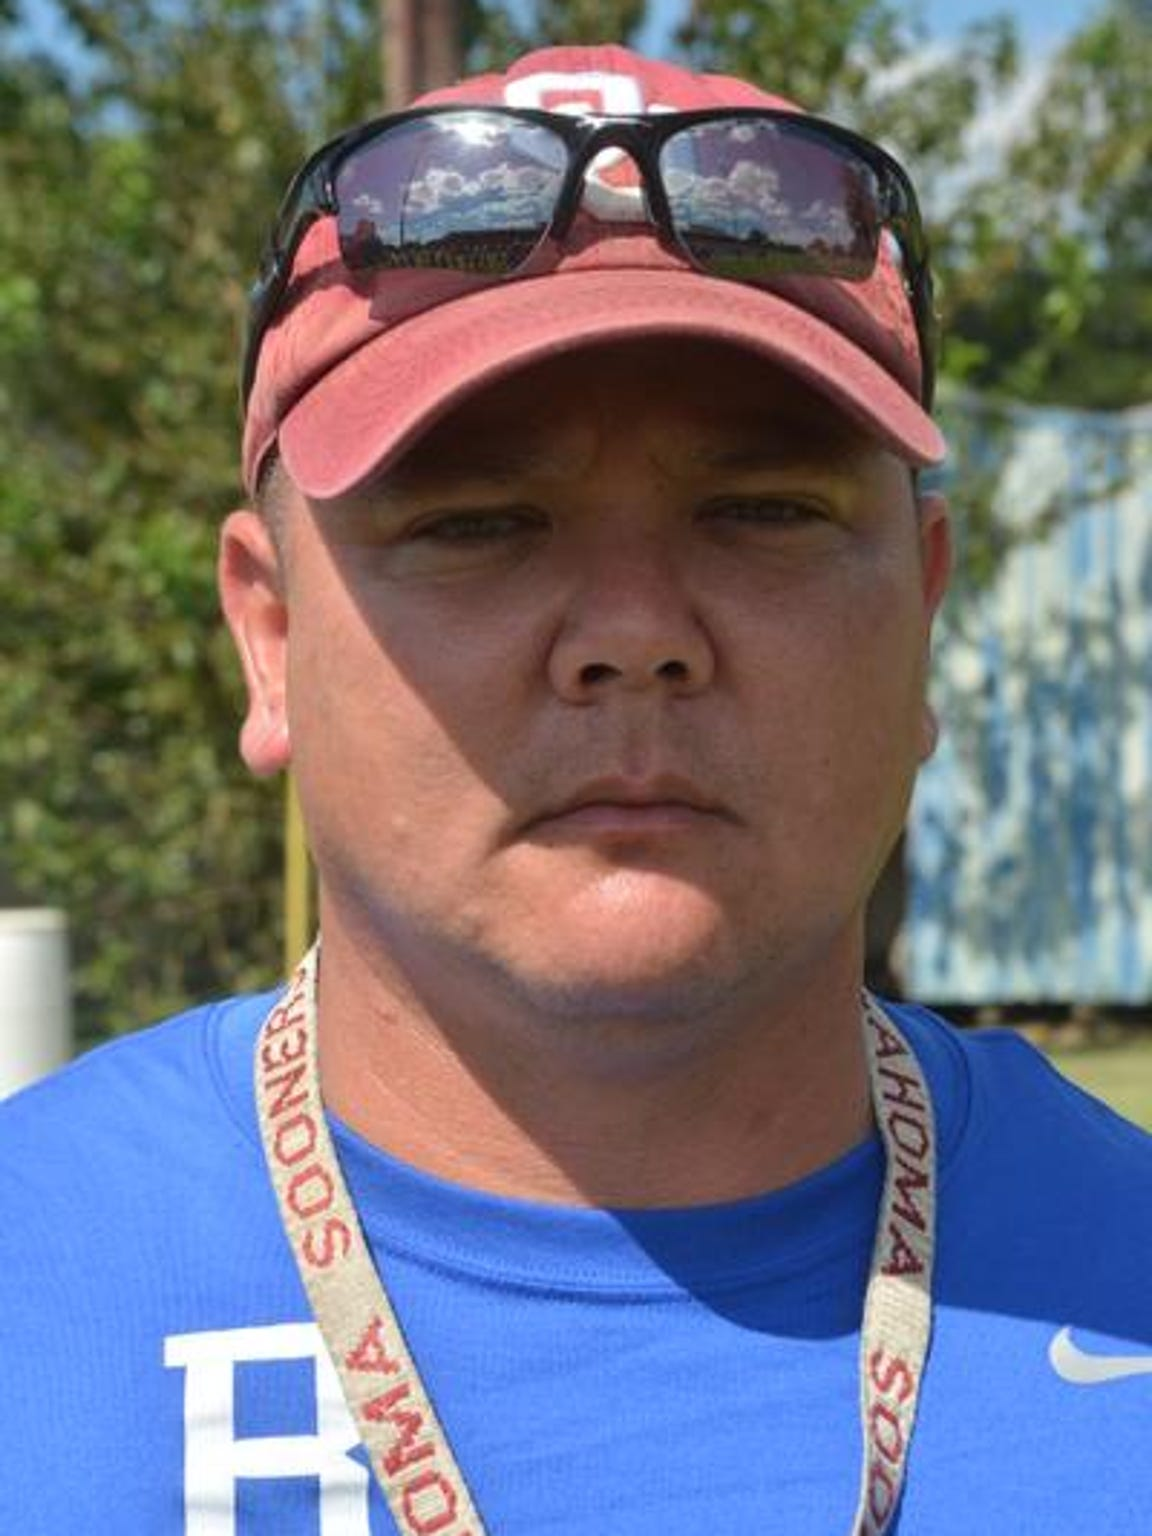 After three seasons with the school, Bolton coach Chris